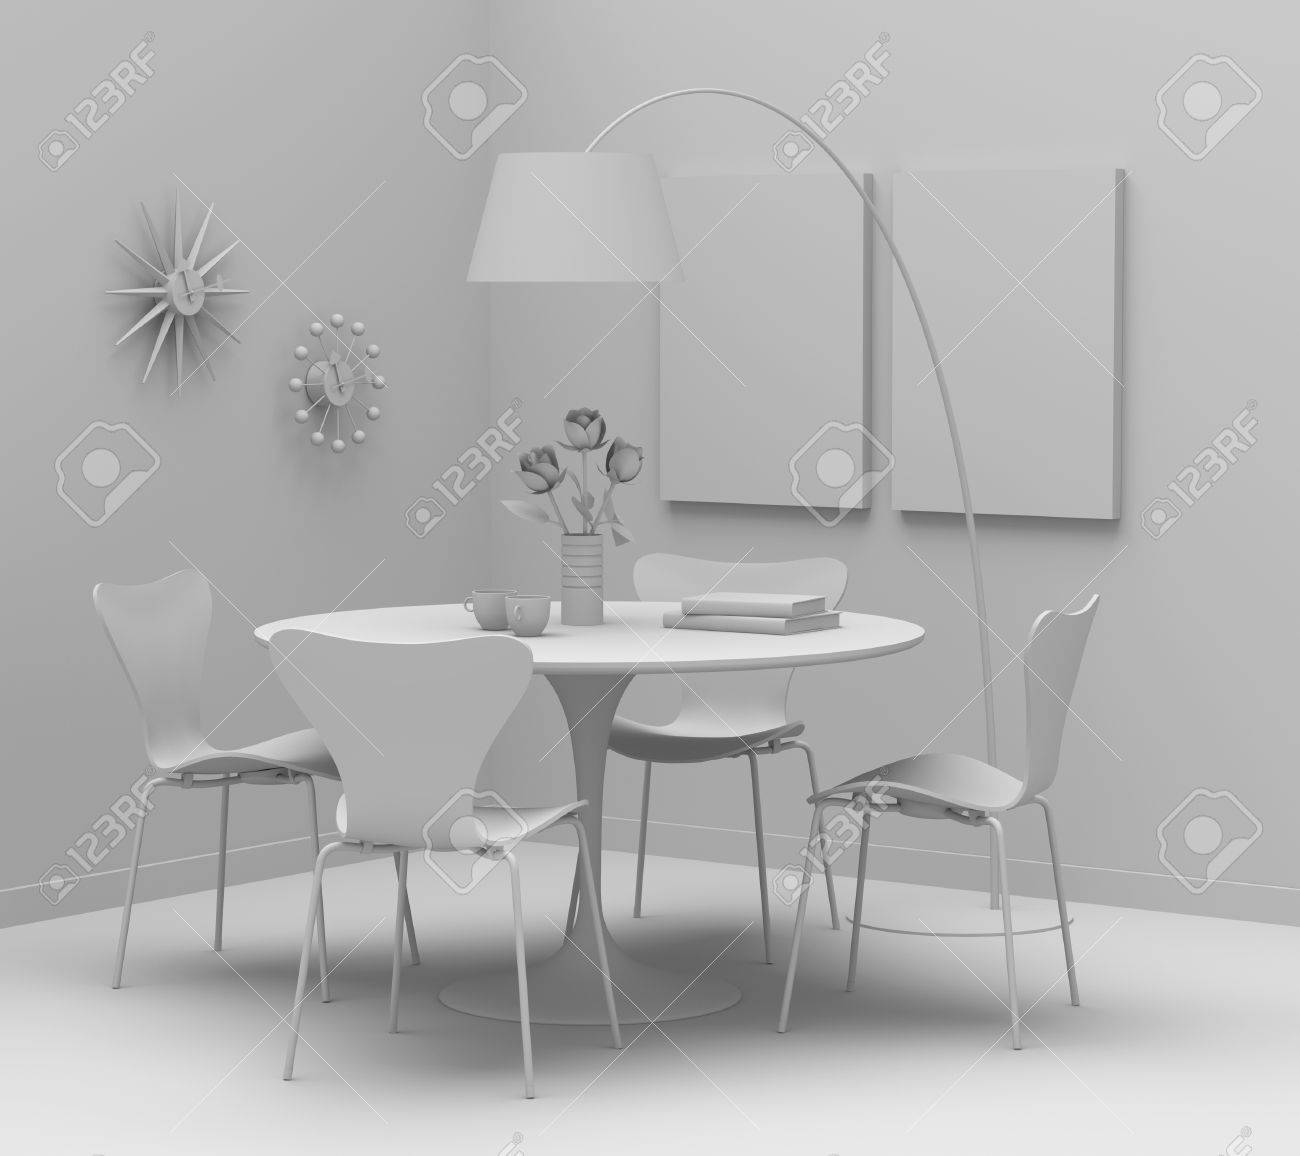 Home Interior Design Retro Furniture Clay Render Stock Photo